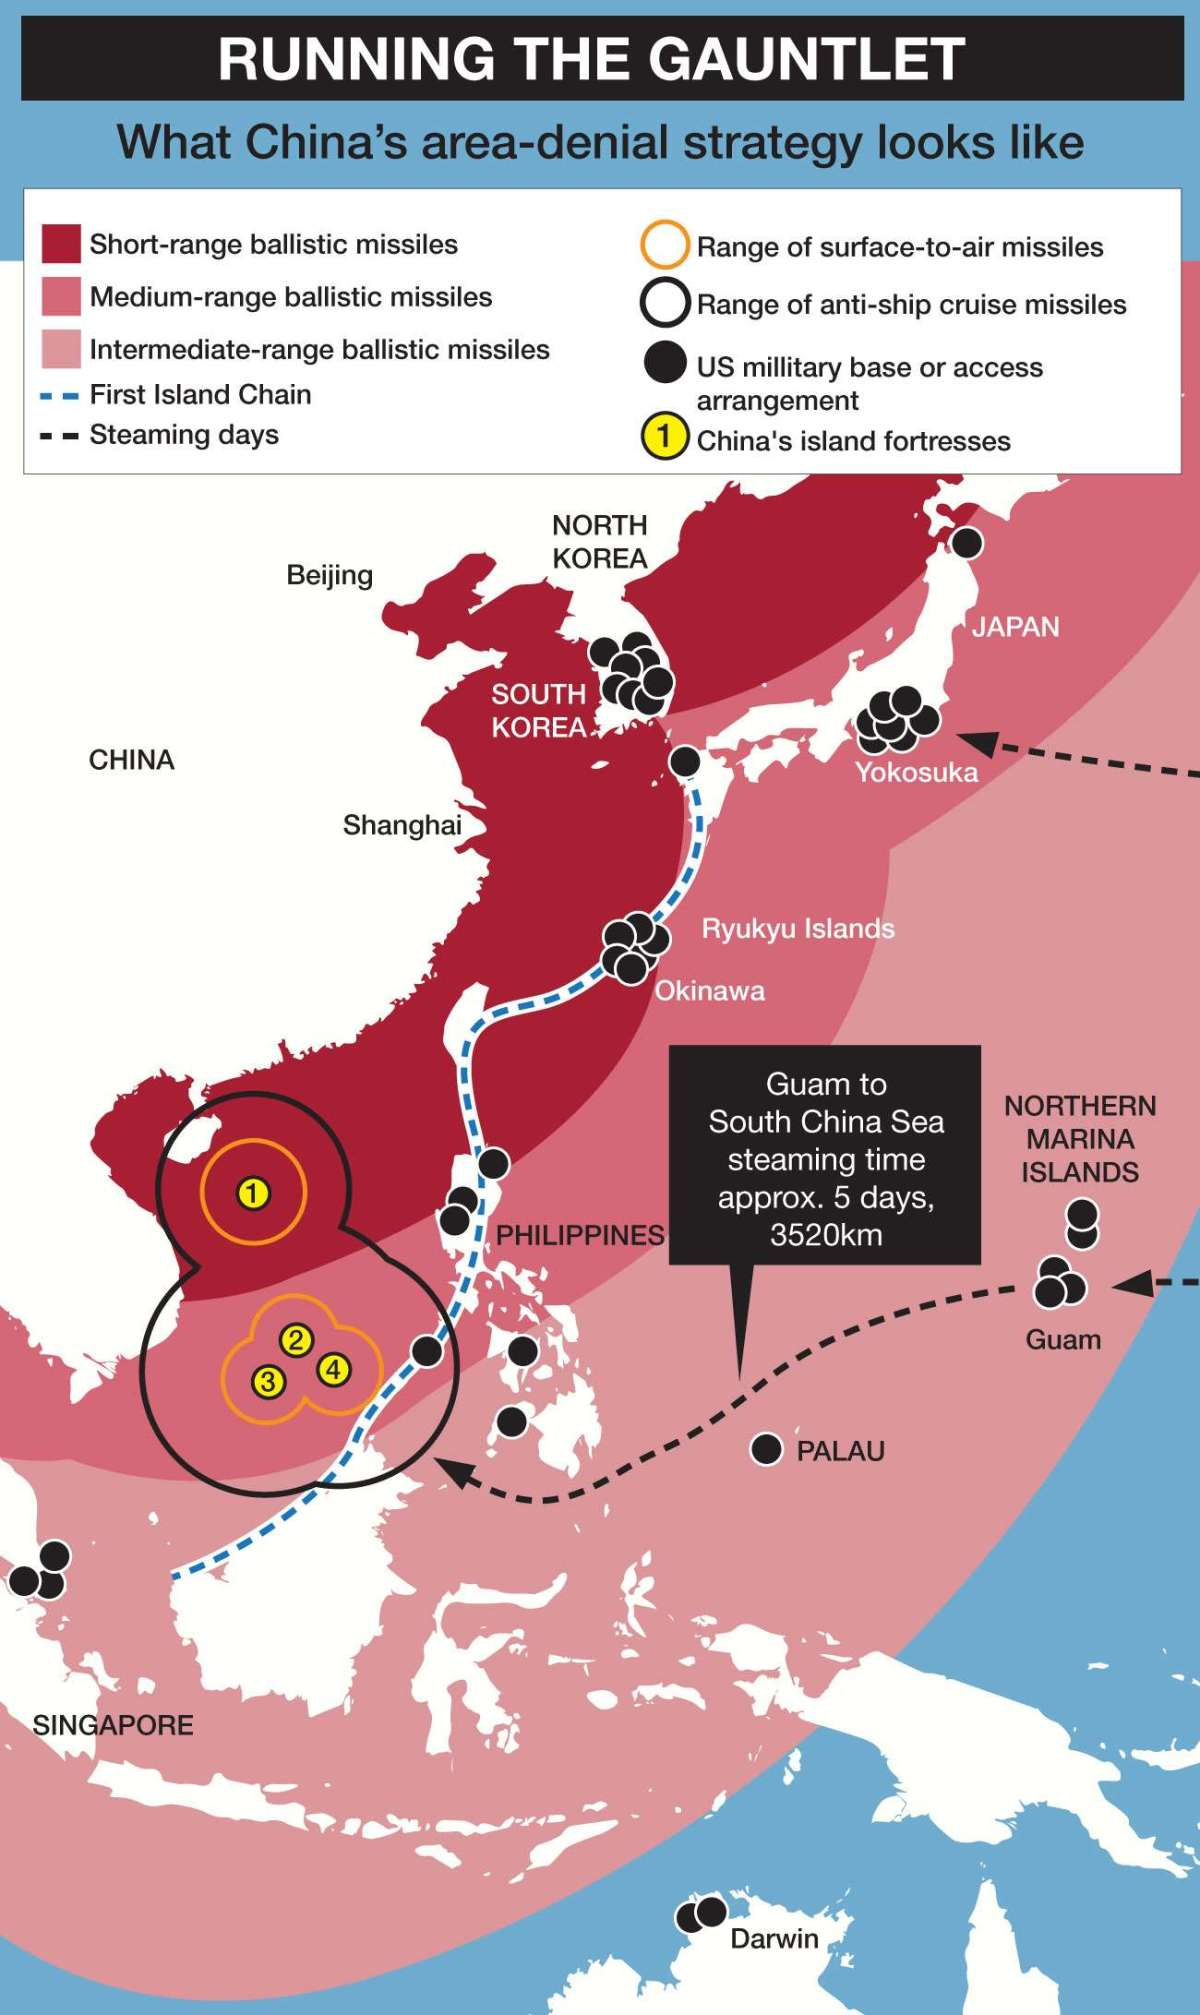 Scary vision of all-out war between China and the US – With the rise of China's military strength, US strategists are working hard to predict how a war would play out. And it doesn't lookgood.